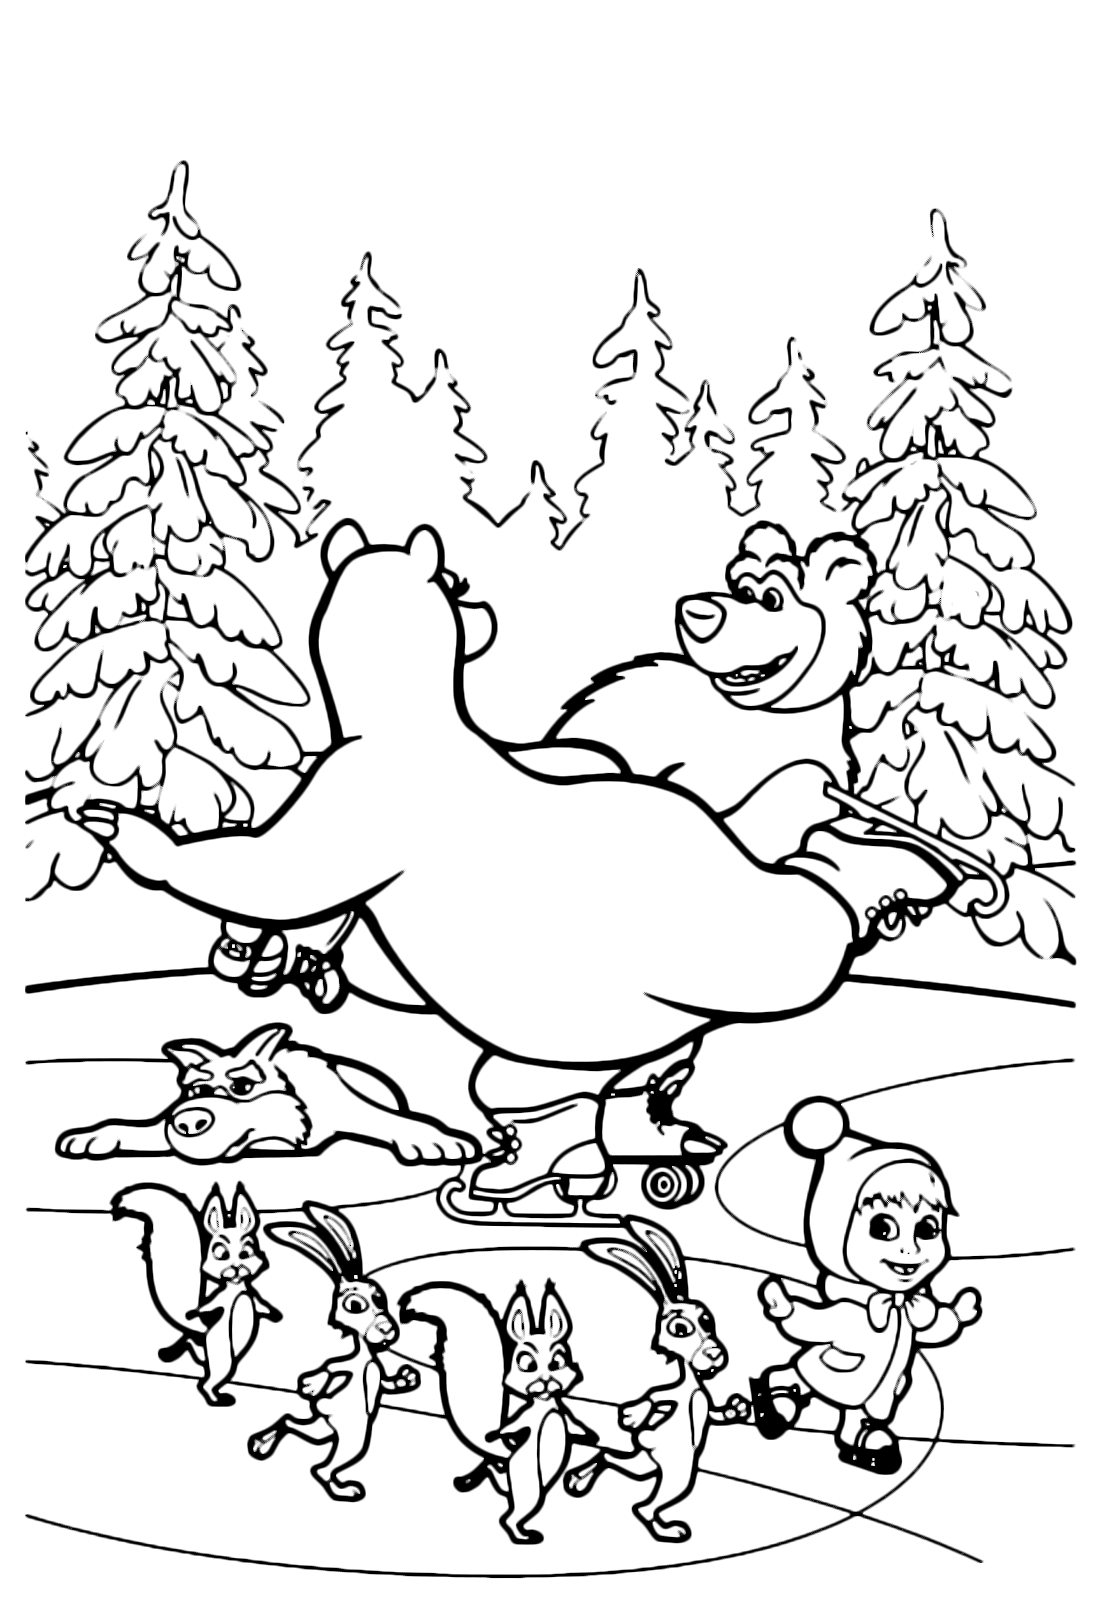 Masha And The Bear Coloring Page Is Dancing On Ice With She All Others Friends